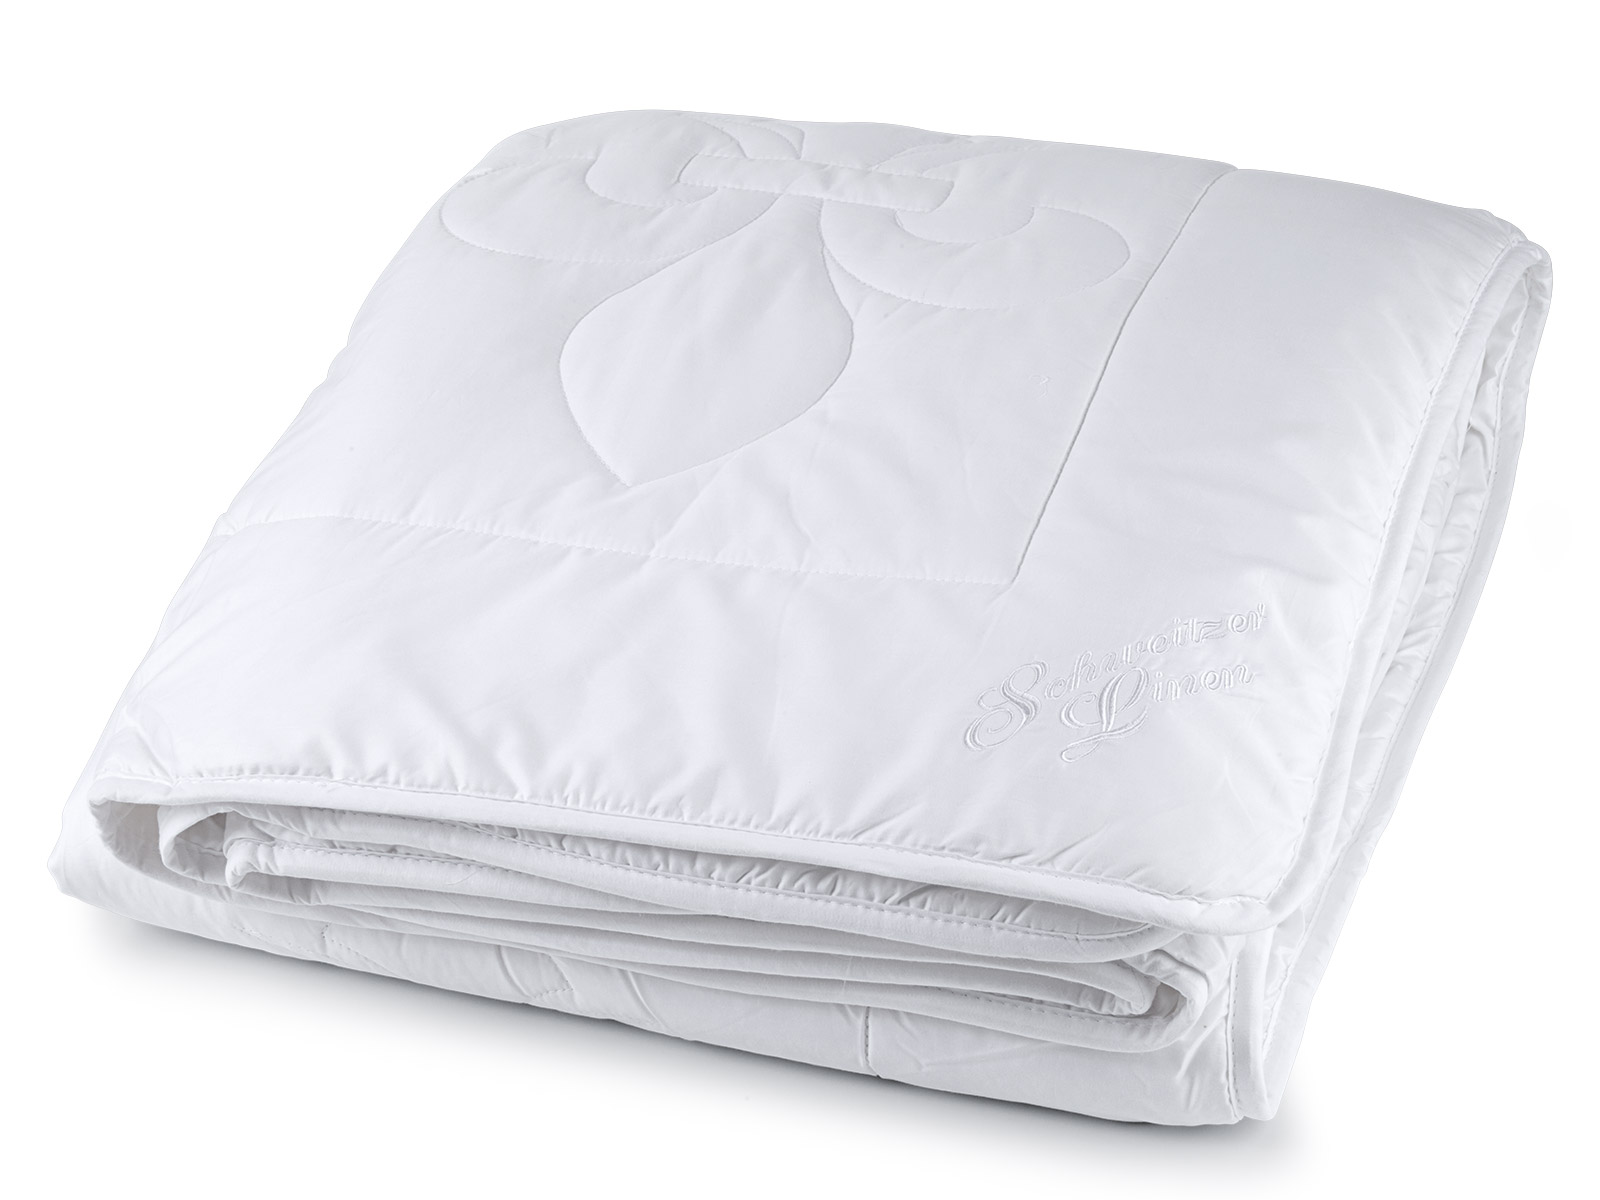 size comforter bed bedroom quality cheap safari sets bedding queen bedspread blanket full for mattress